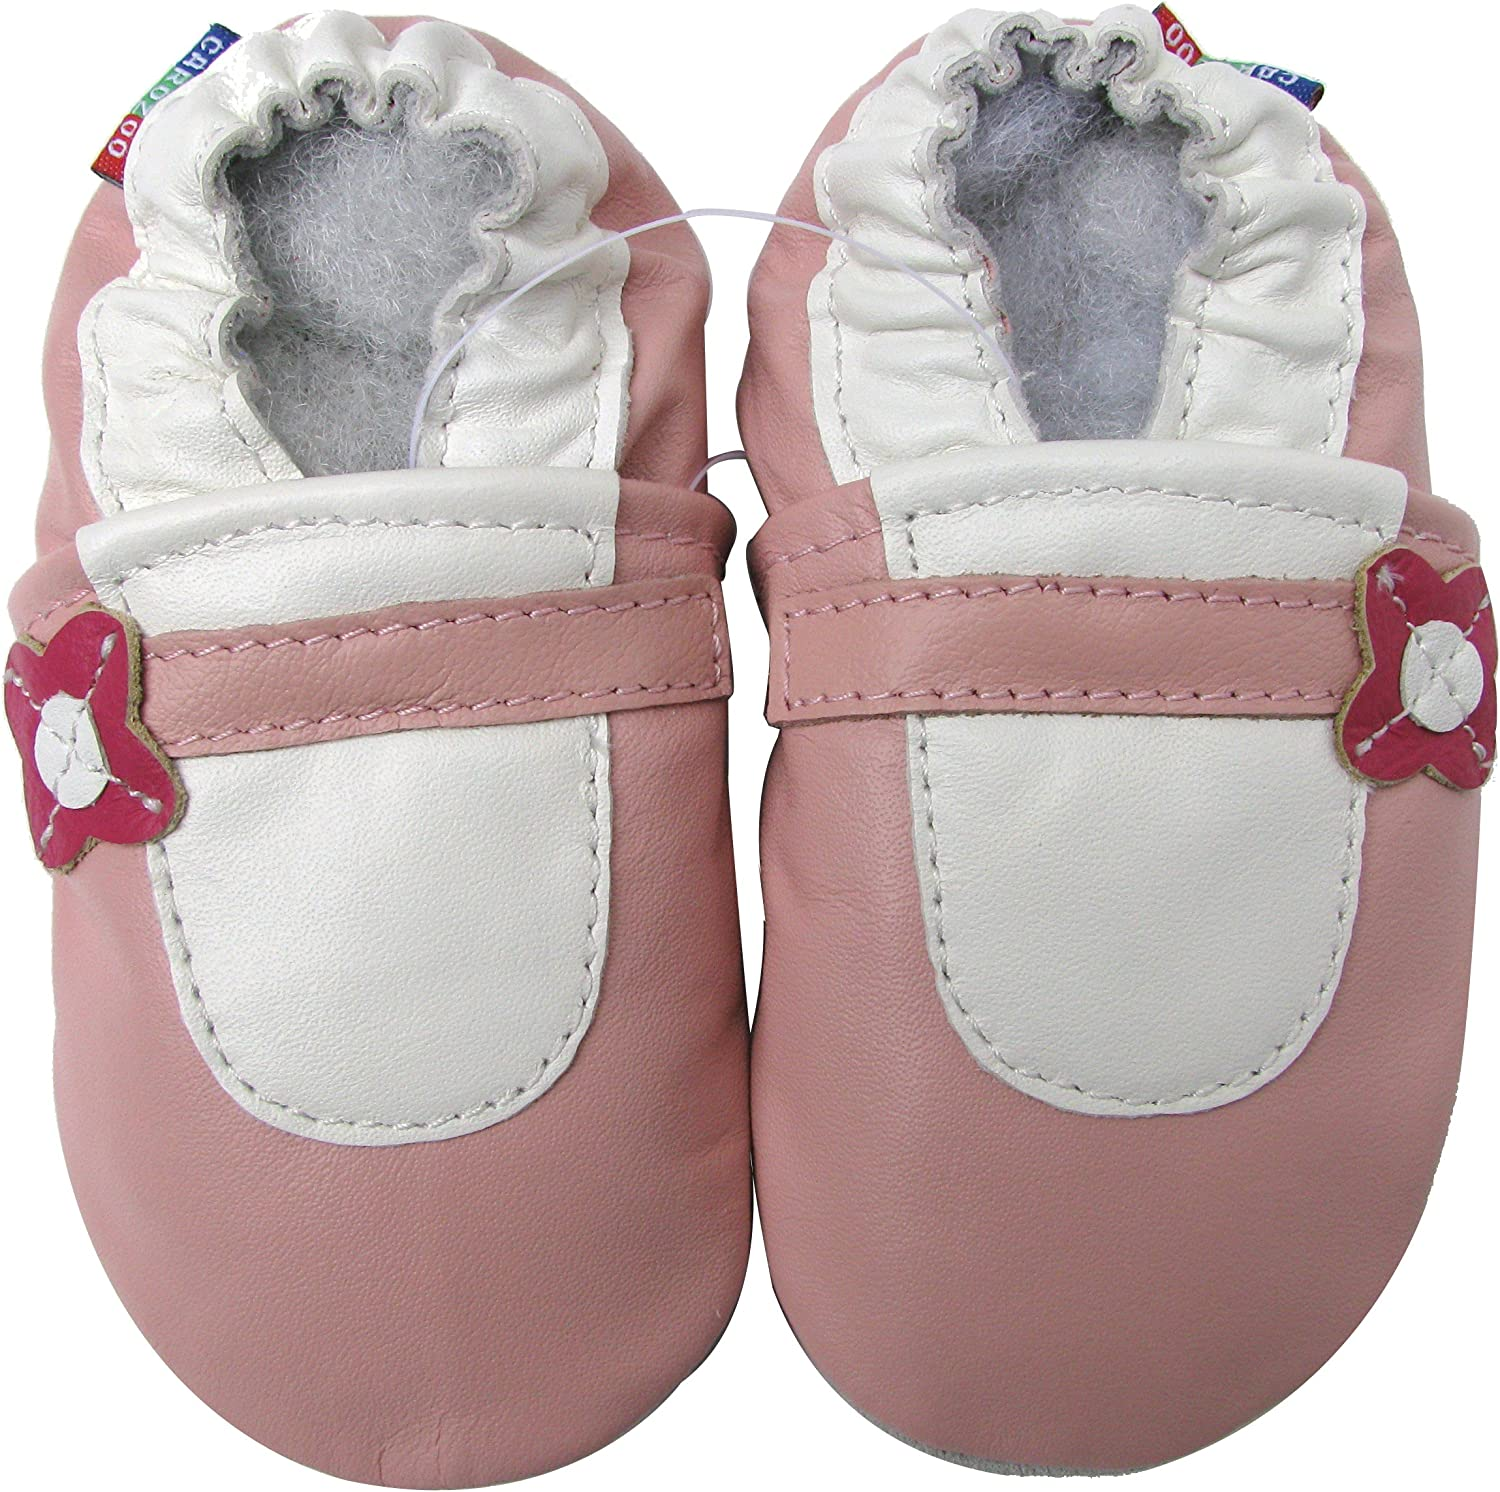 Carozoo Mary Jane Baby Girl Soft Sole Leather Shoes Slippers